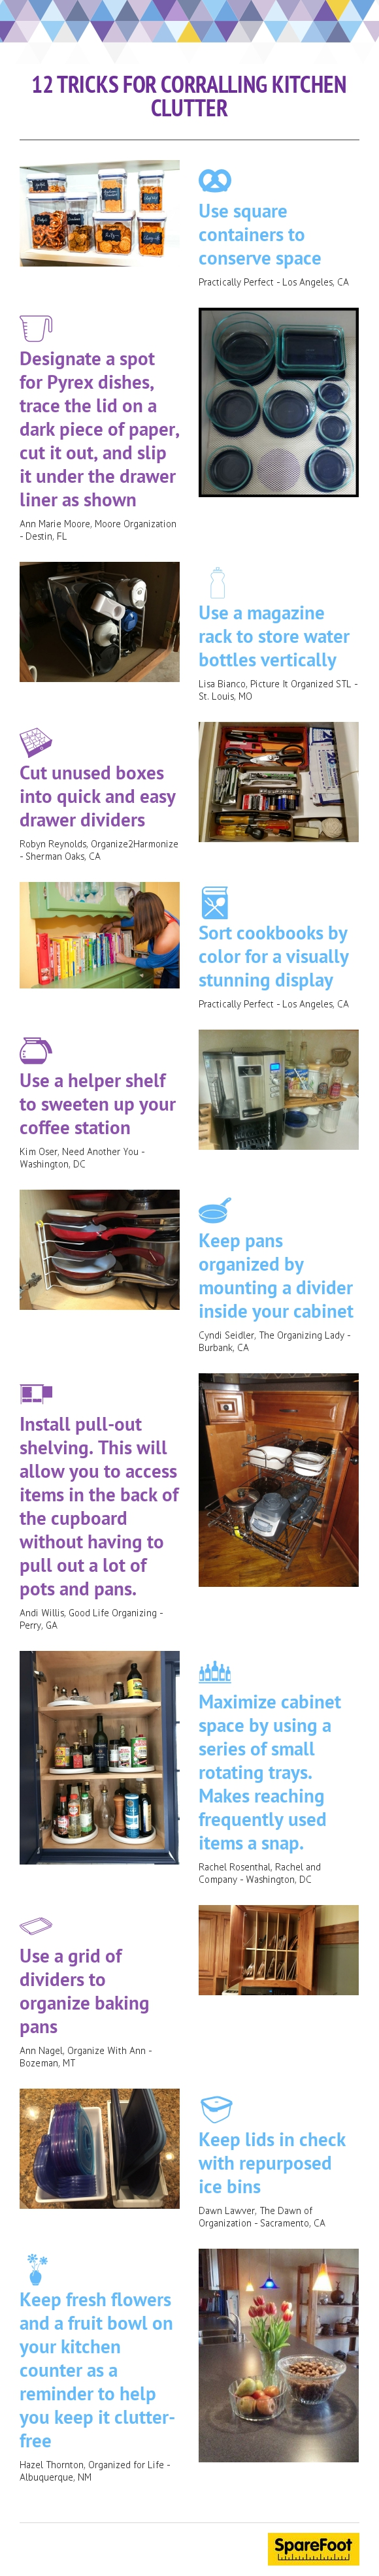 12_TRICKS_FOR_CORRALLING_KITCHEN_CLUTTER (1)